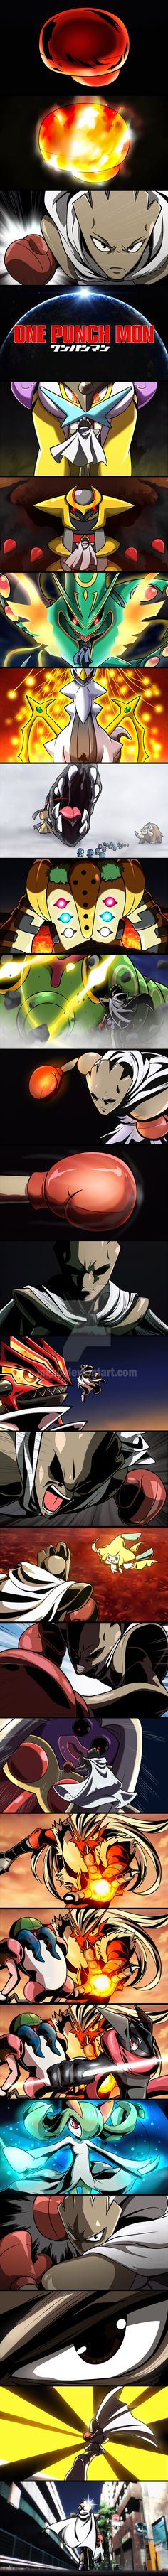 ONE PUNCH MON! by Mgx0 on DeviantArt